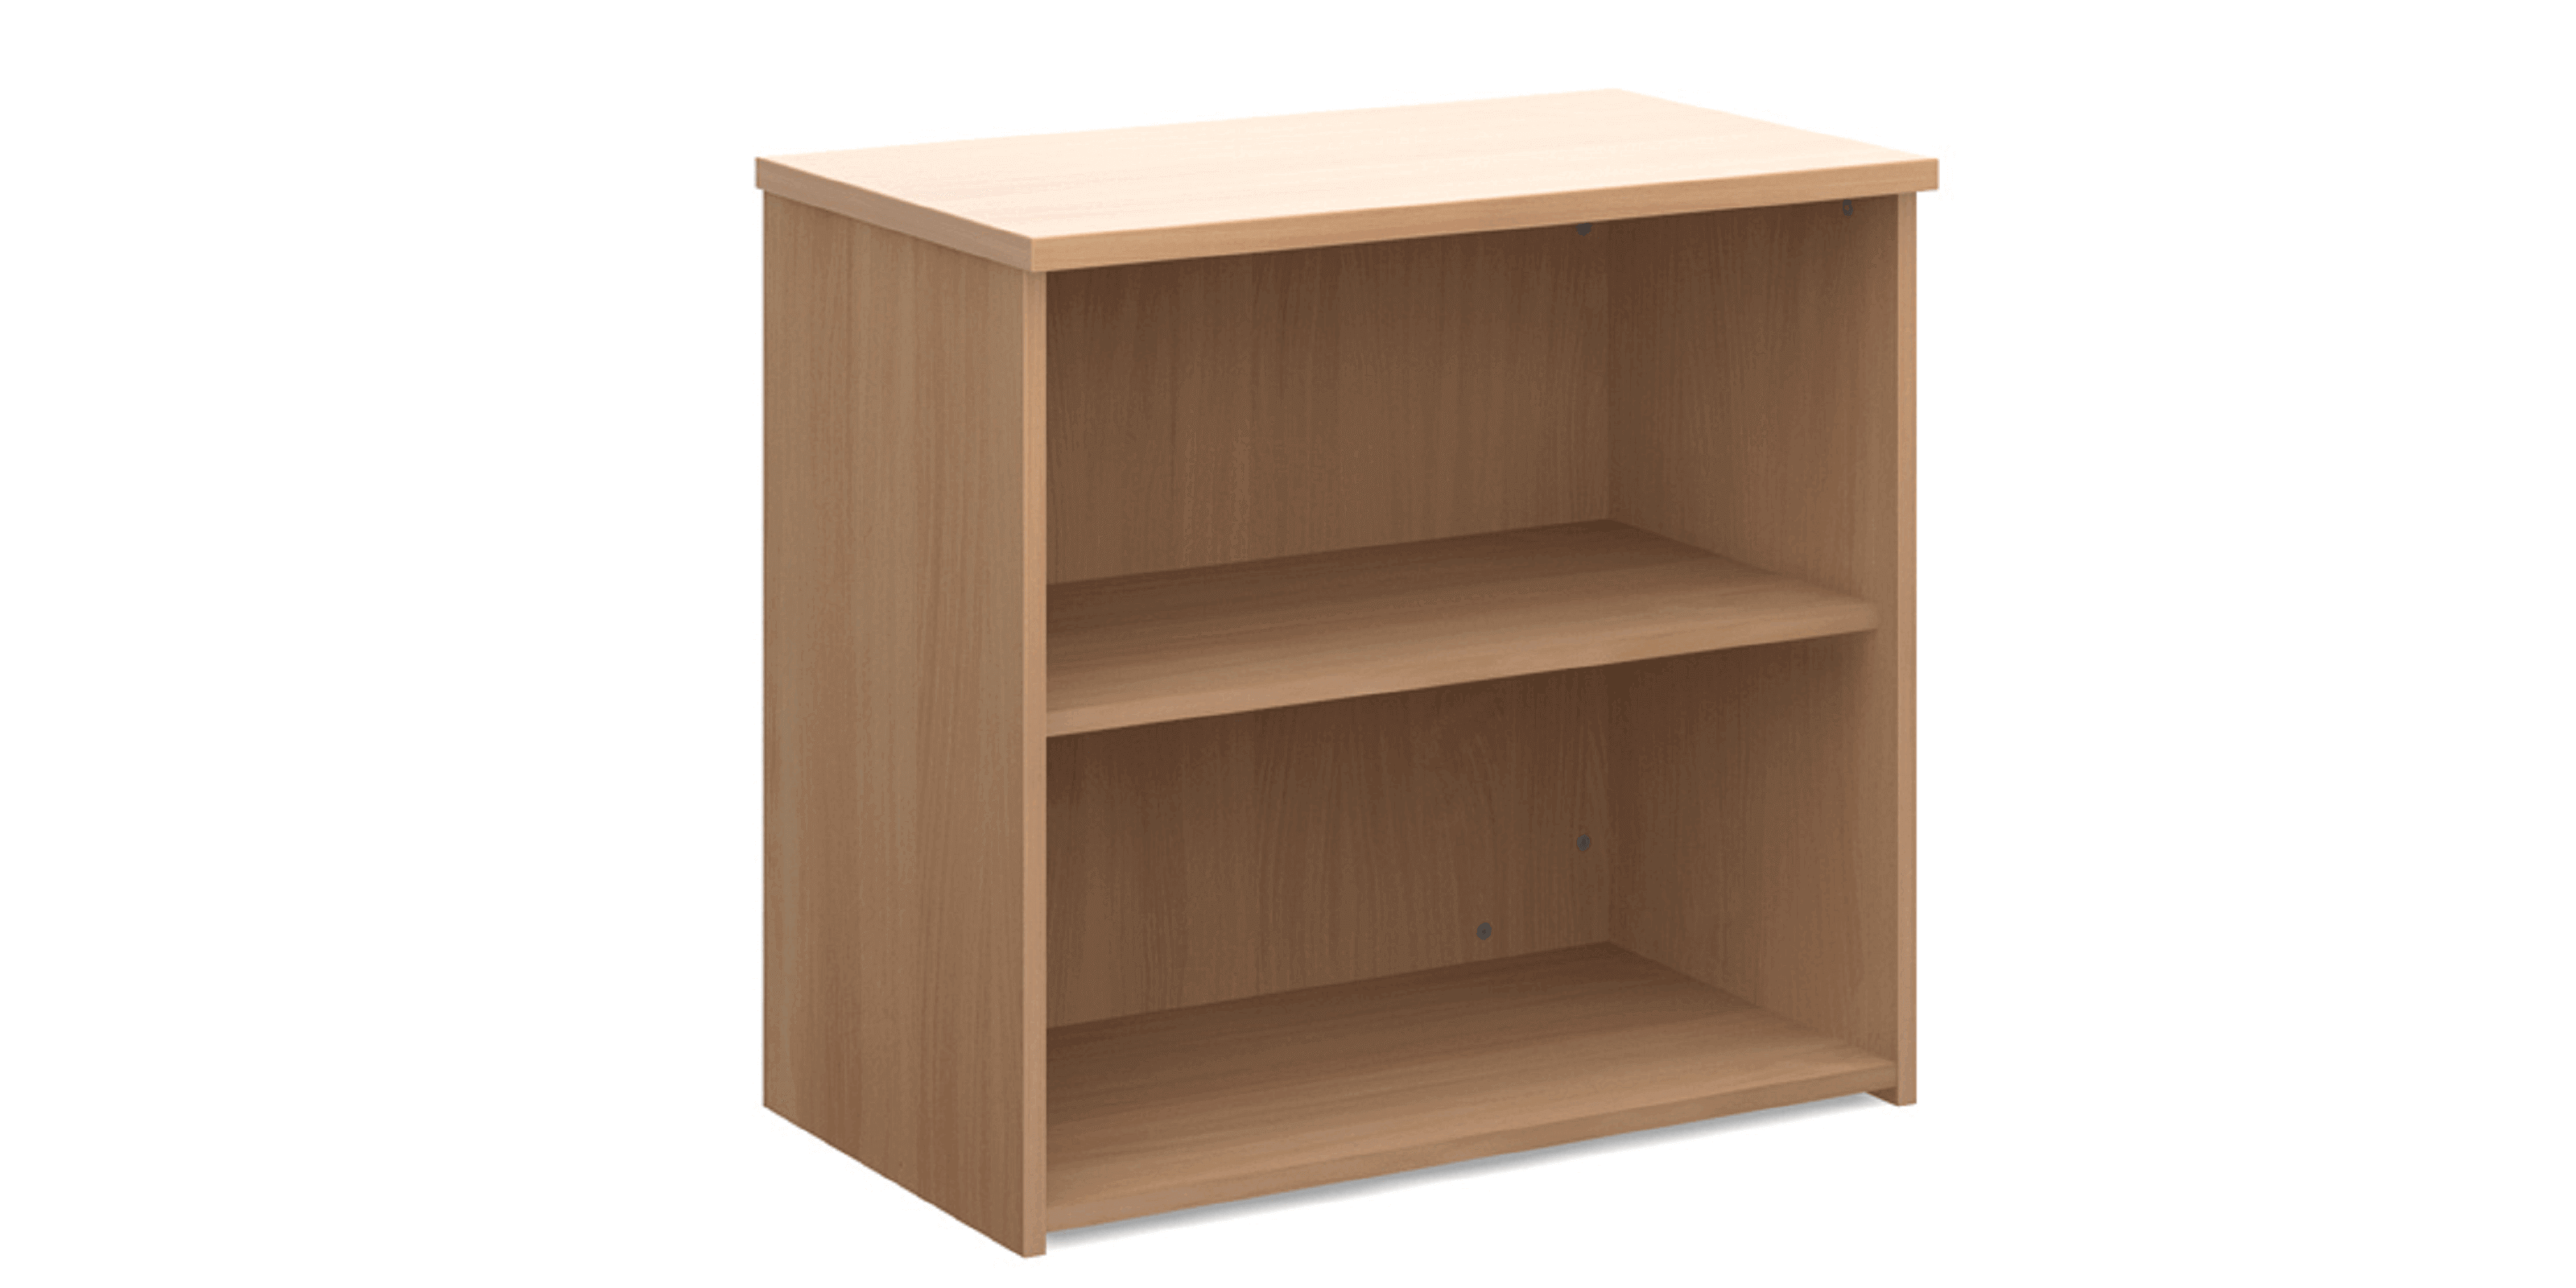 Secondary Storage Universal Bookcase Image